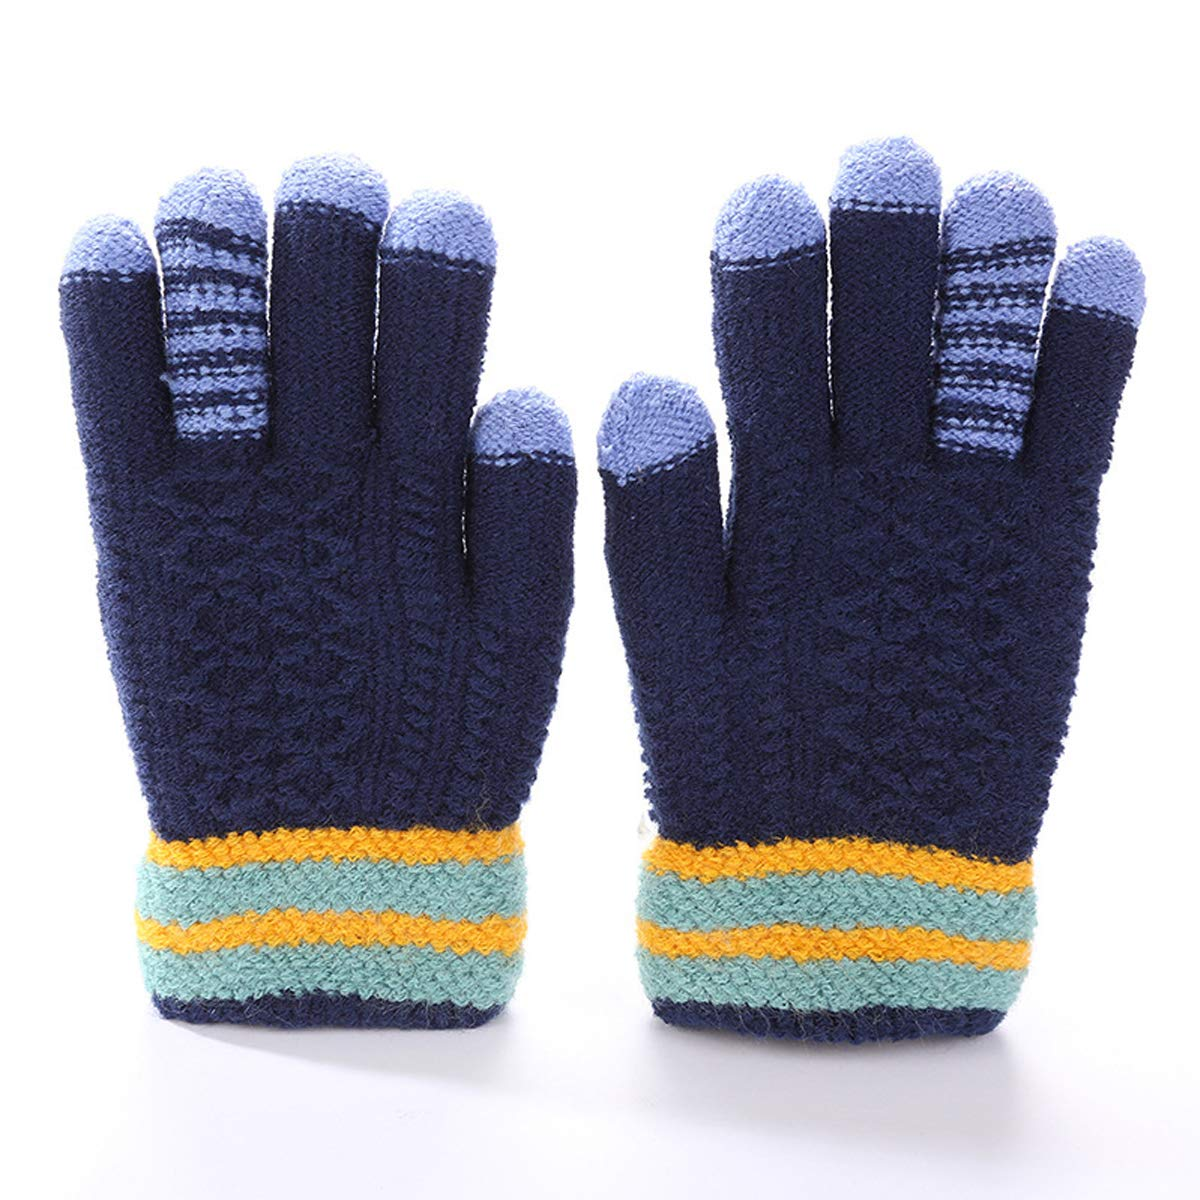 Kids Winter Gloves Boys Knit Gloves Magic Gloves Fleece Lined Full Finger Children Mittens Gloves 6-15 years old)